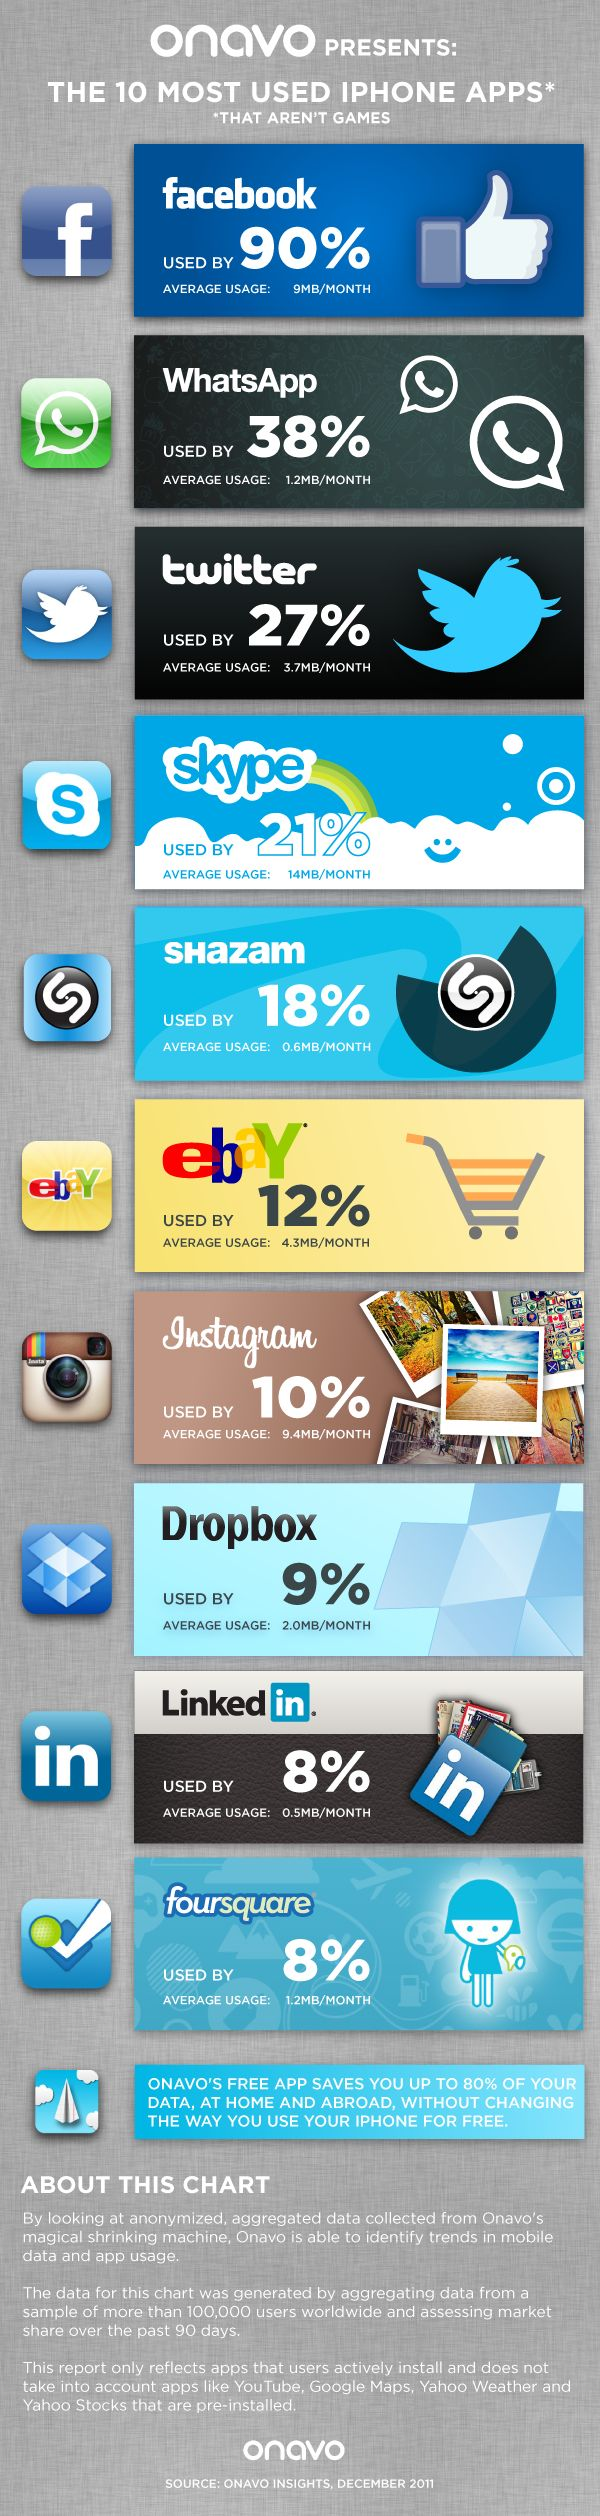 Top 10 Most used iPhone Apps